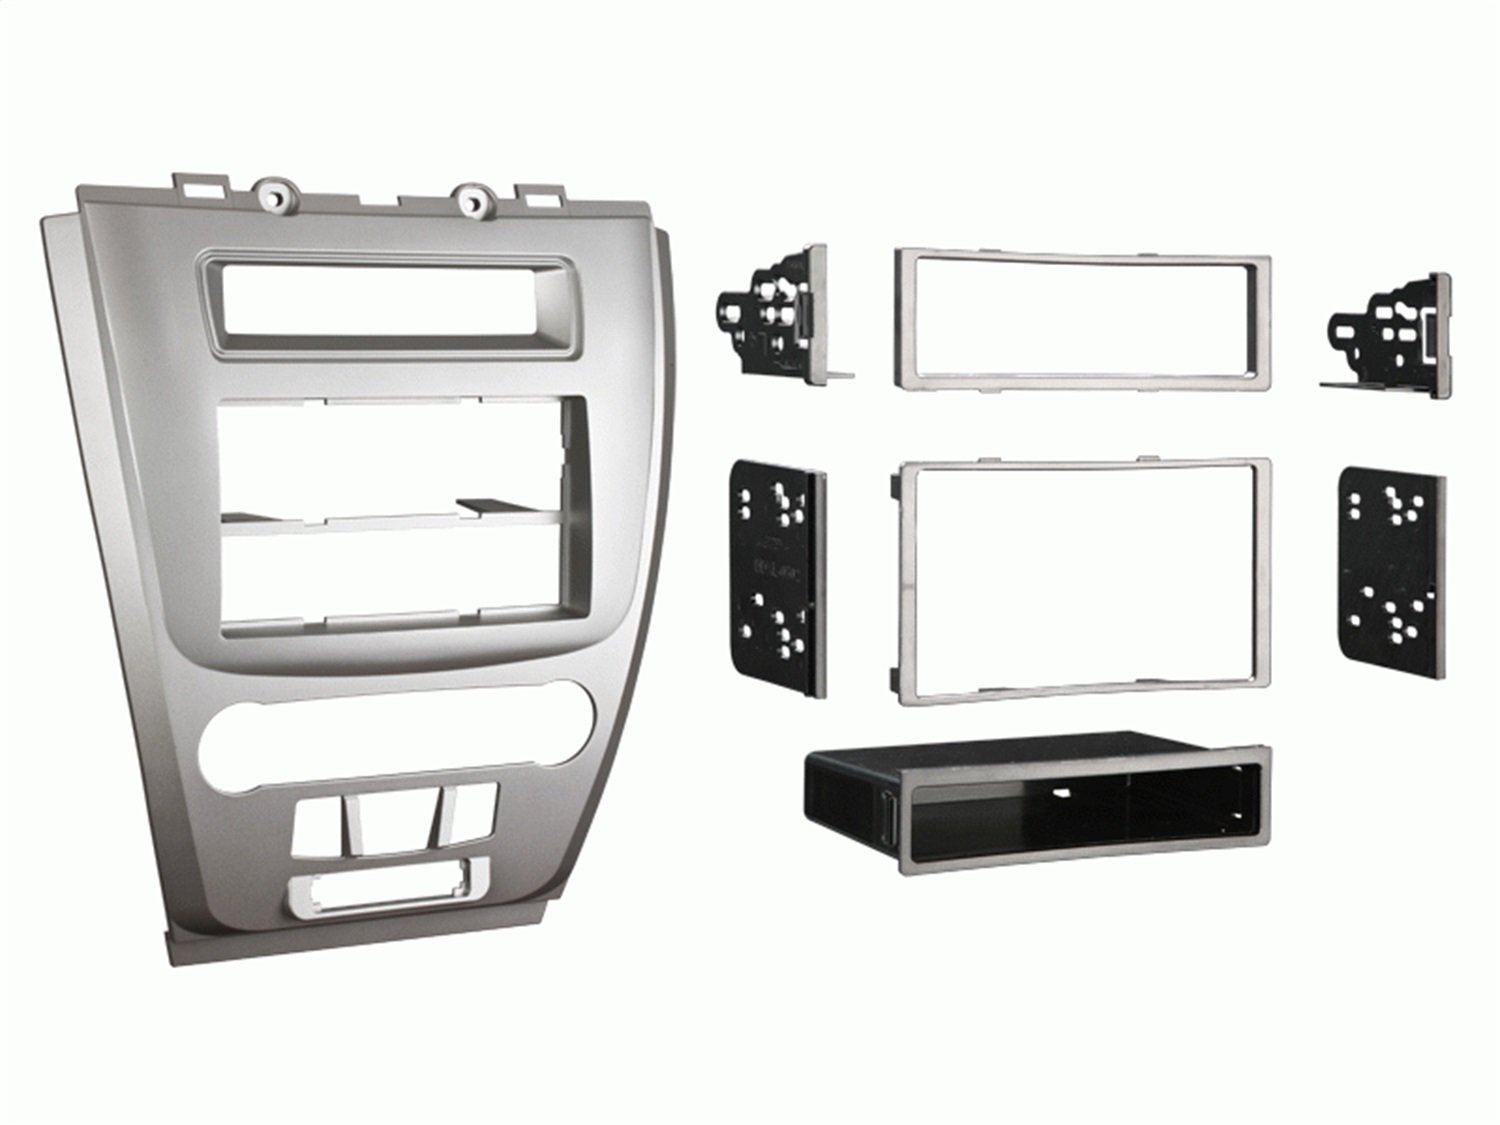 Metra 99-5821S Single or Double DIN Installation Dash Kit for 2010 Ford Fusion and Mercury Milan, Silver